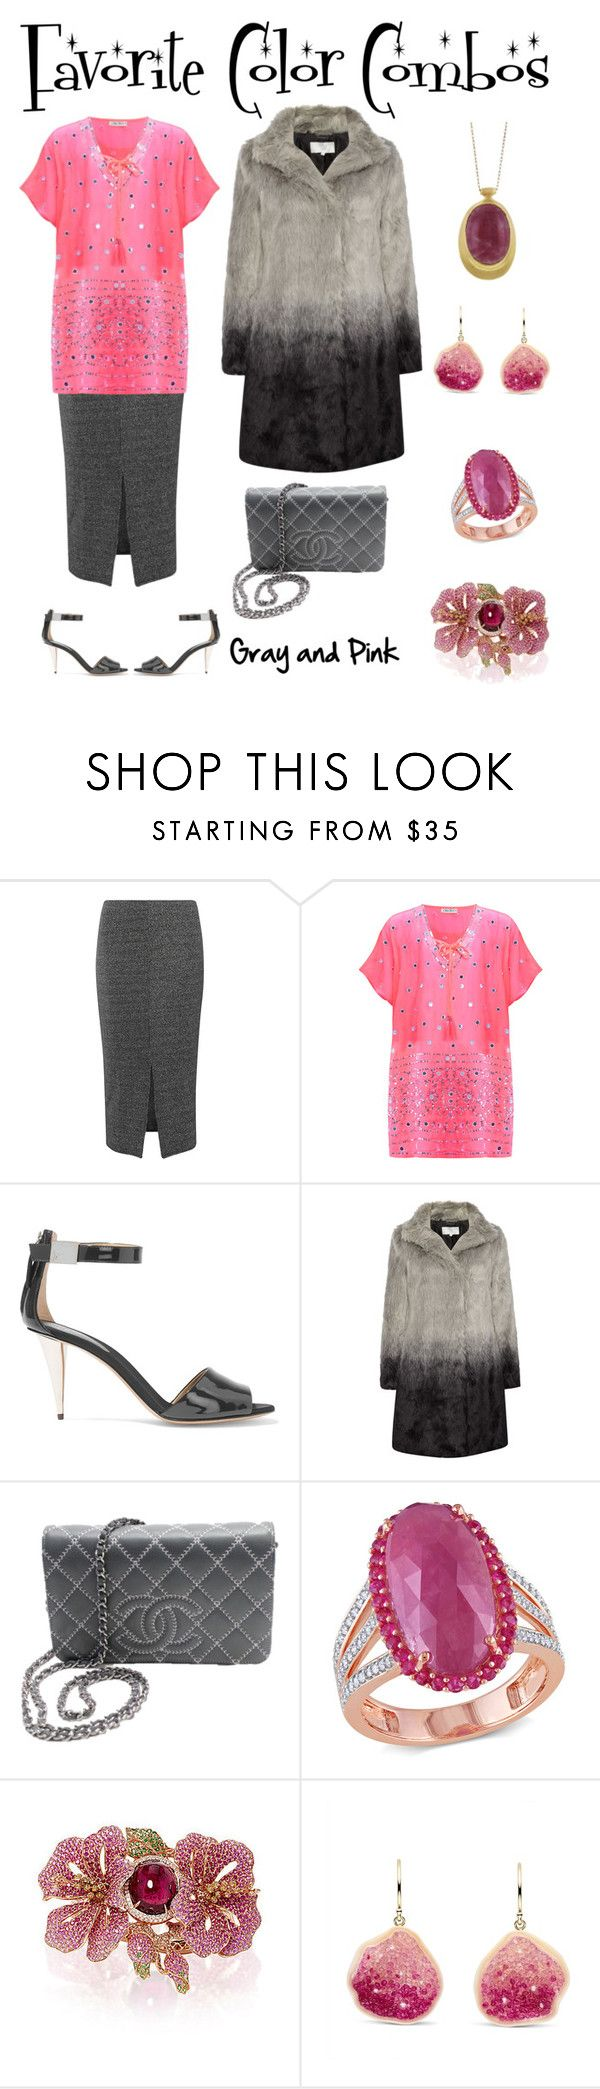 """""""Favorite Color Combos - Gray and Pink"""" by karen-galves on Polyvore featuring Dorothy Perkins, Blue Pearl, Giuseppe Zanotti, Gray & Willow, Chanel, Miadora, Wendy Yue and Ten Thousand Things"""